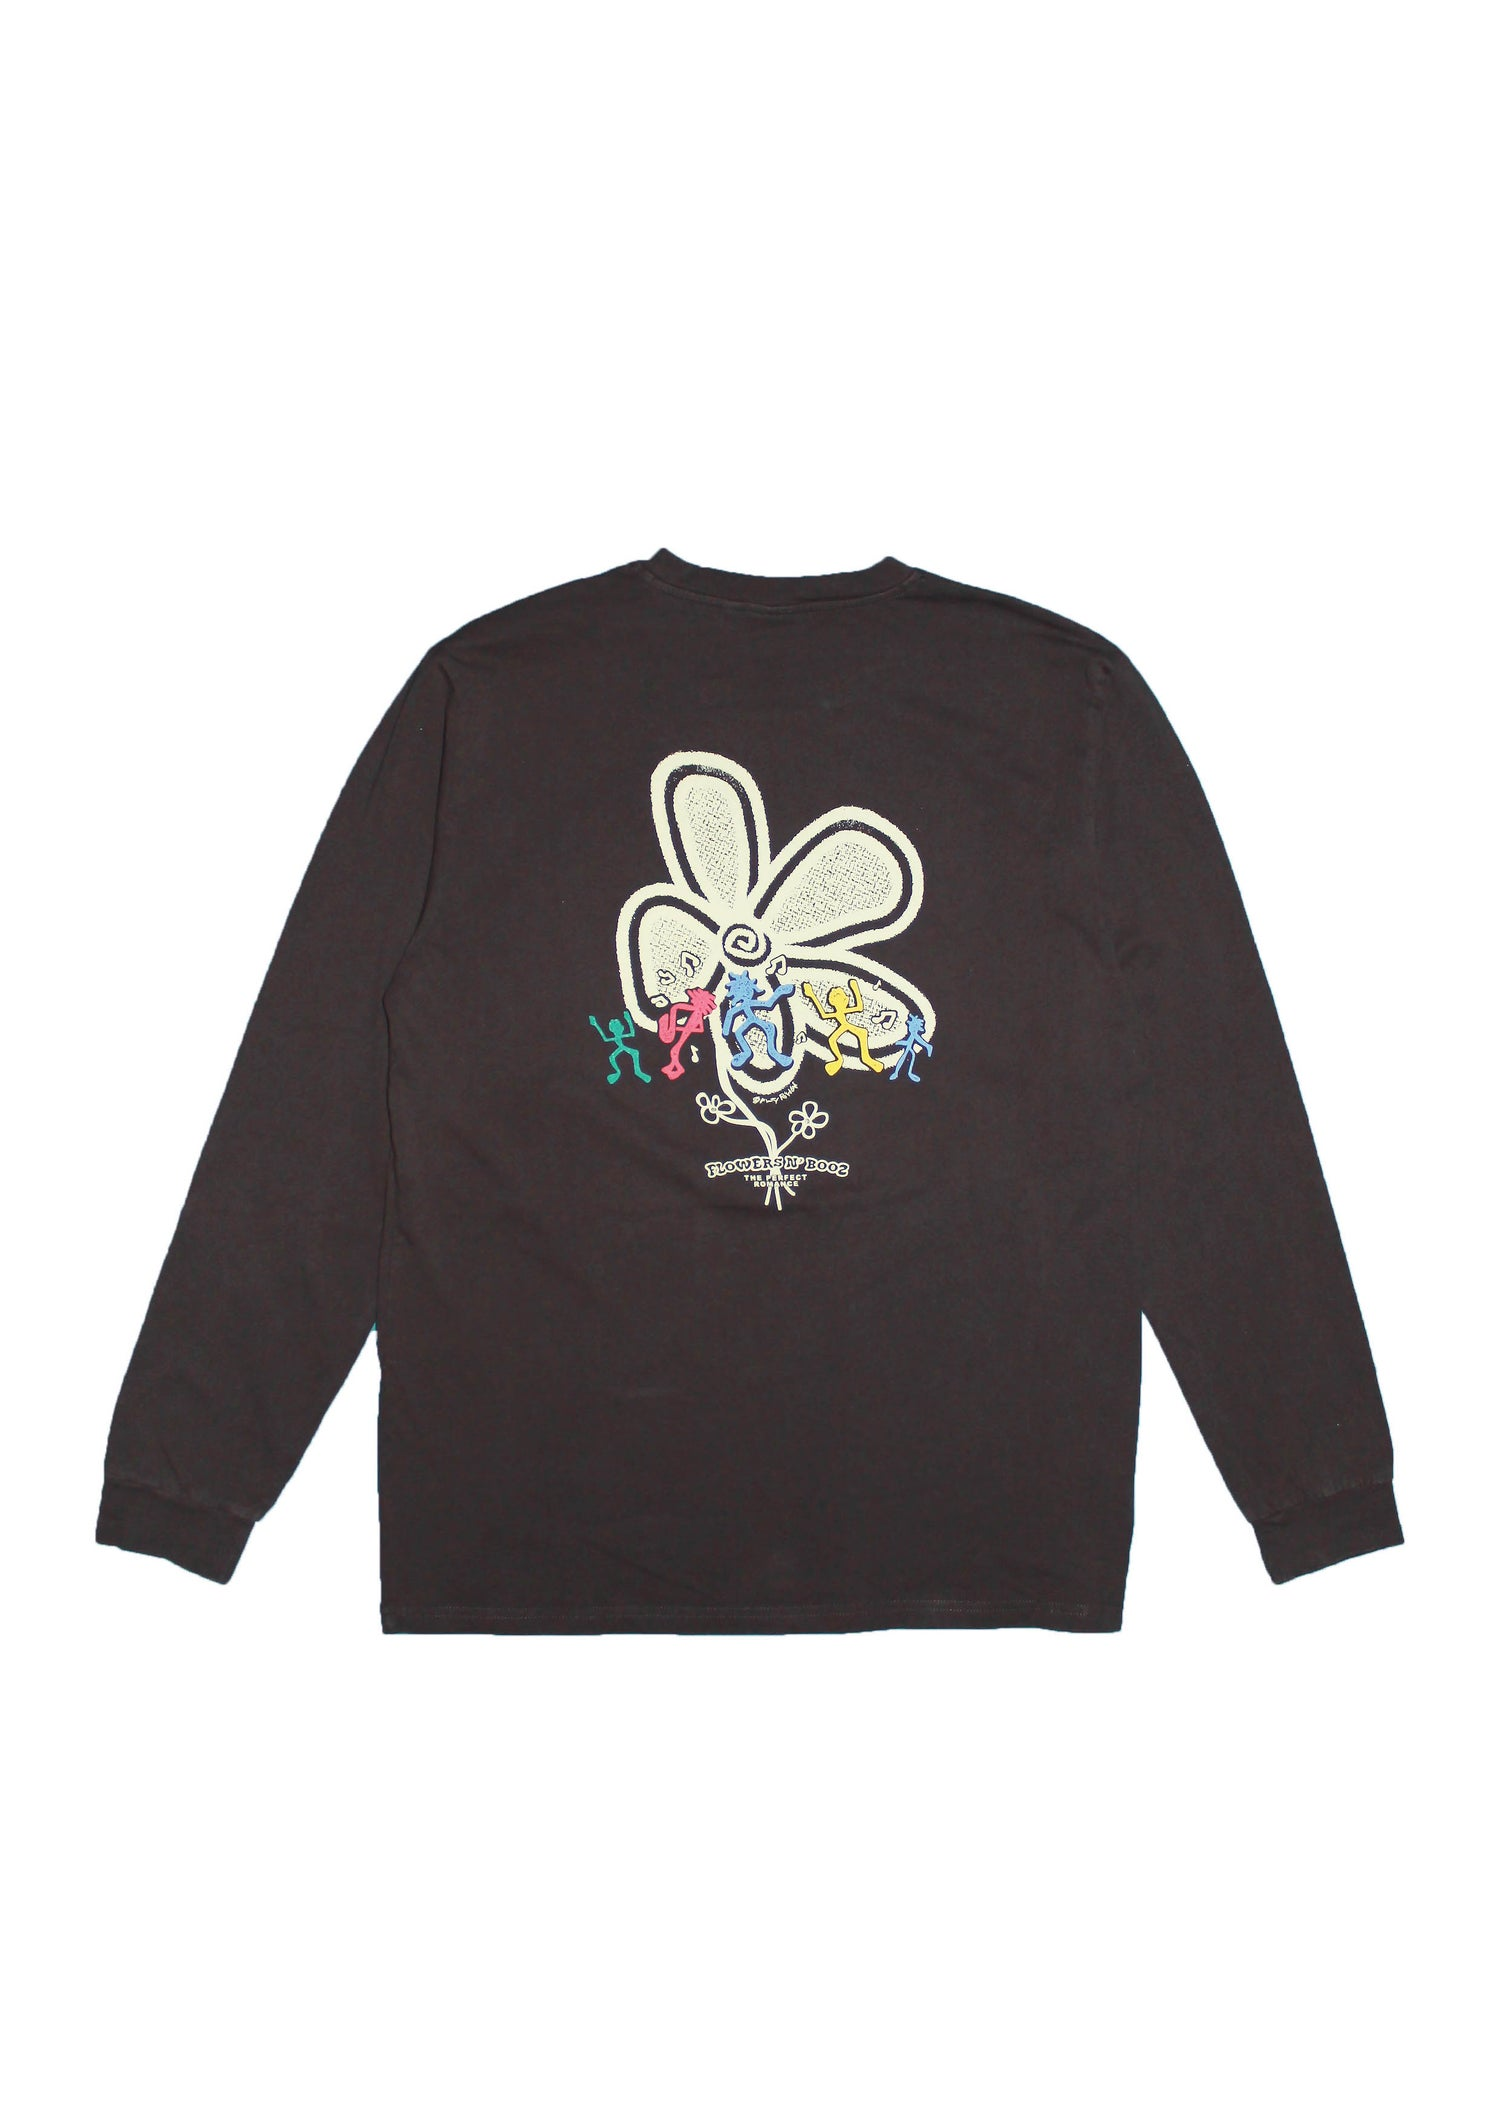 Image of Flowers N' Booz L/S